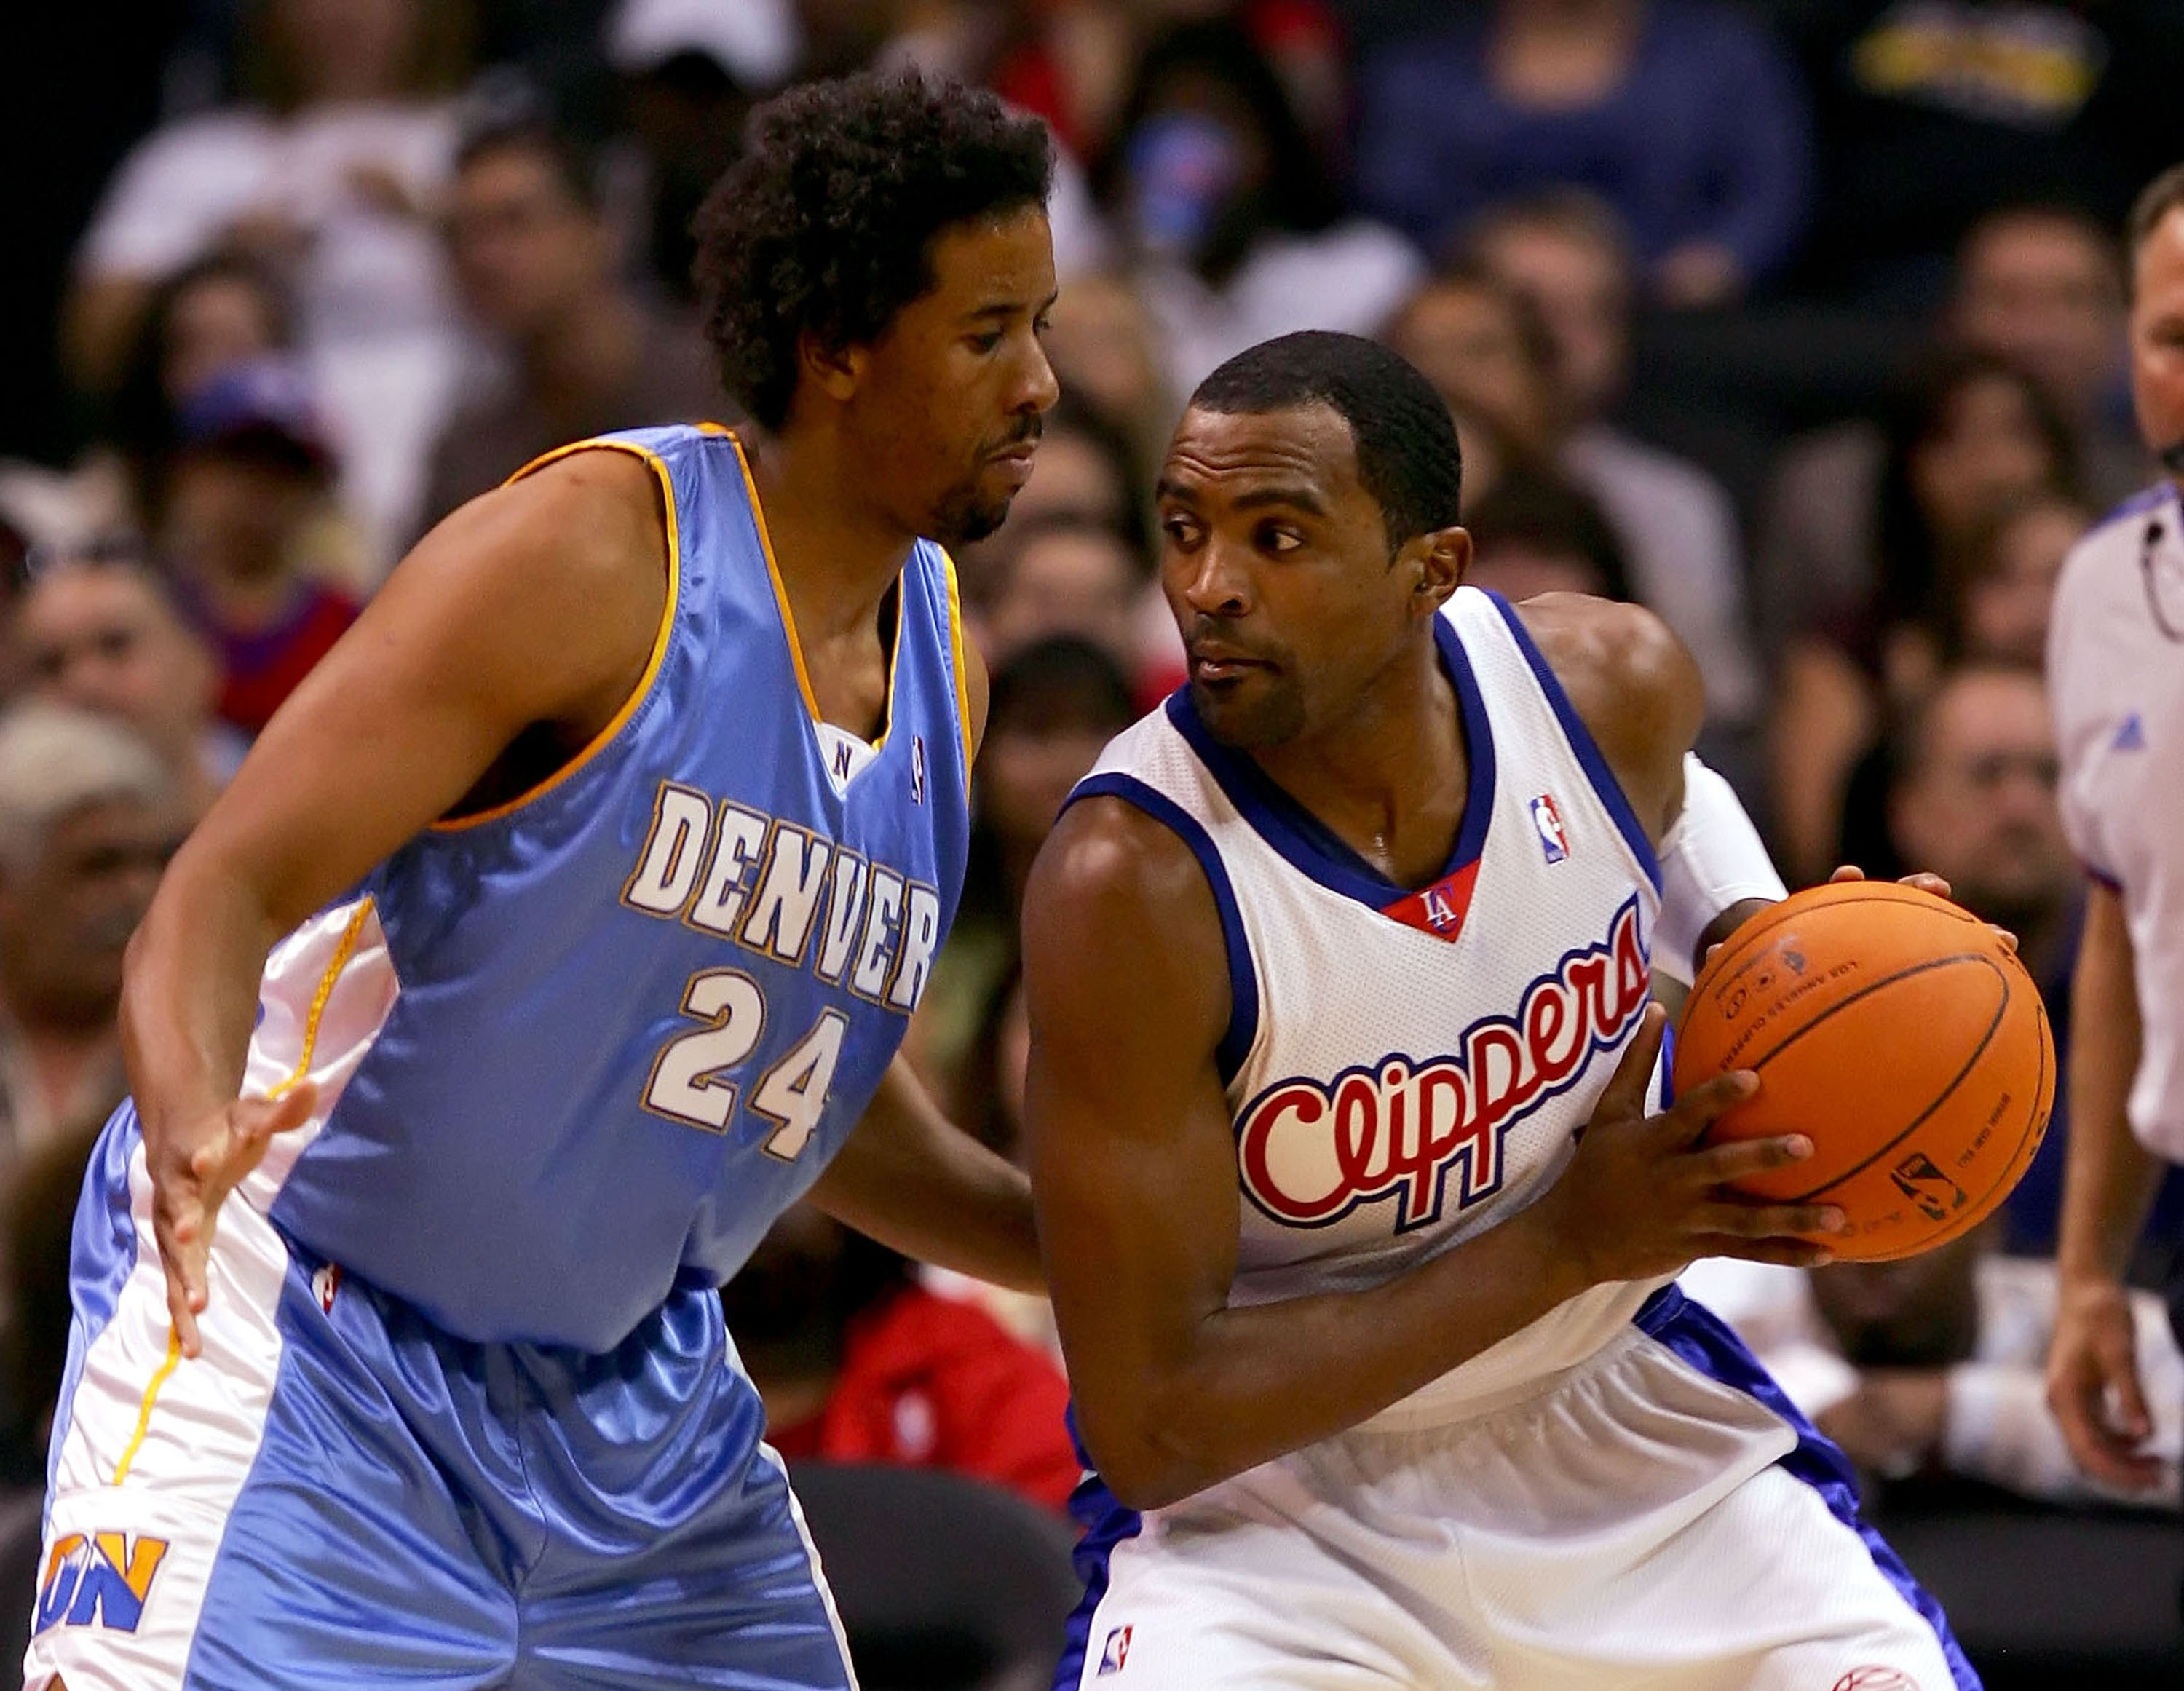 LOS ANGELES - OCTOBER 27:   Andre Miller #24 of the Denver Nuggets puts the pressure on Cuttino Mobley #5 of the Los Angeles Clippers on October 27, 2006 at Staples Center in Los Angeles, California. NOTE TO USER: User expressly acknowledges and agrees th